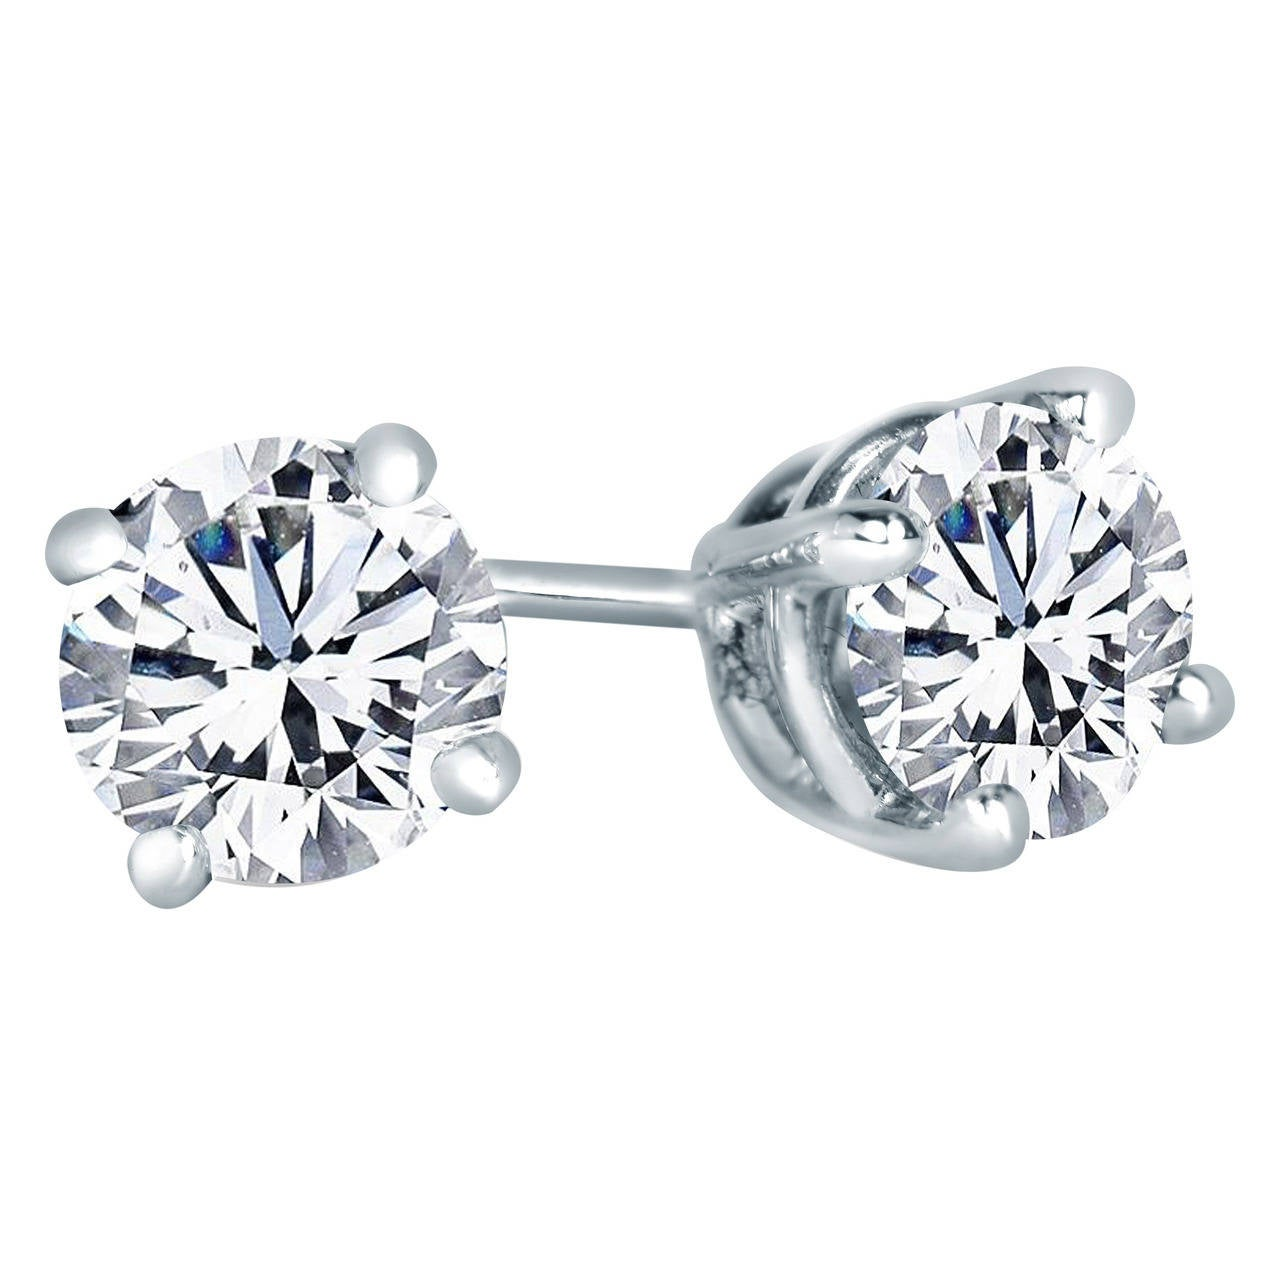 1 carat stud earrings sale 2 06 carats gold stud earrings for sale at 1stdibs 4715